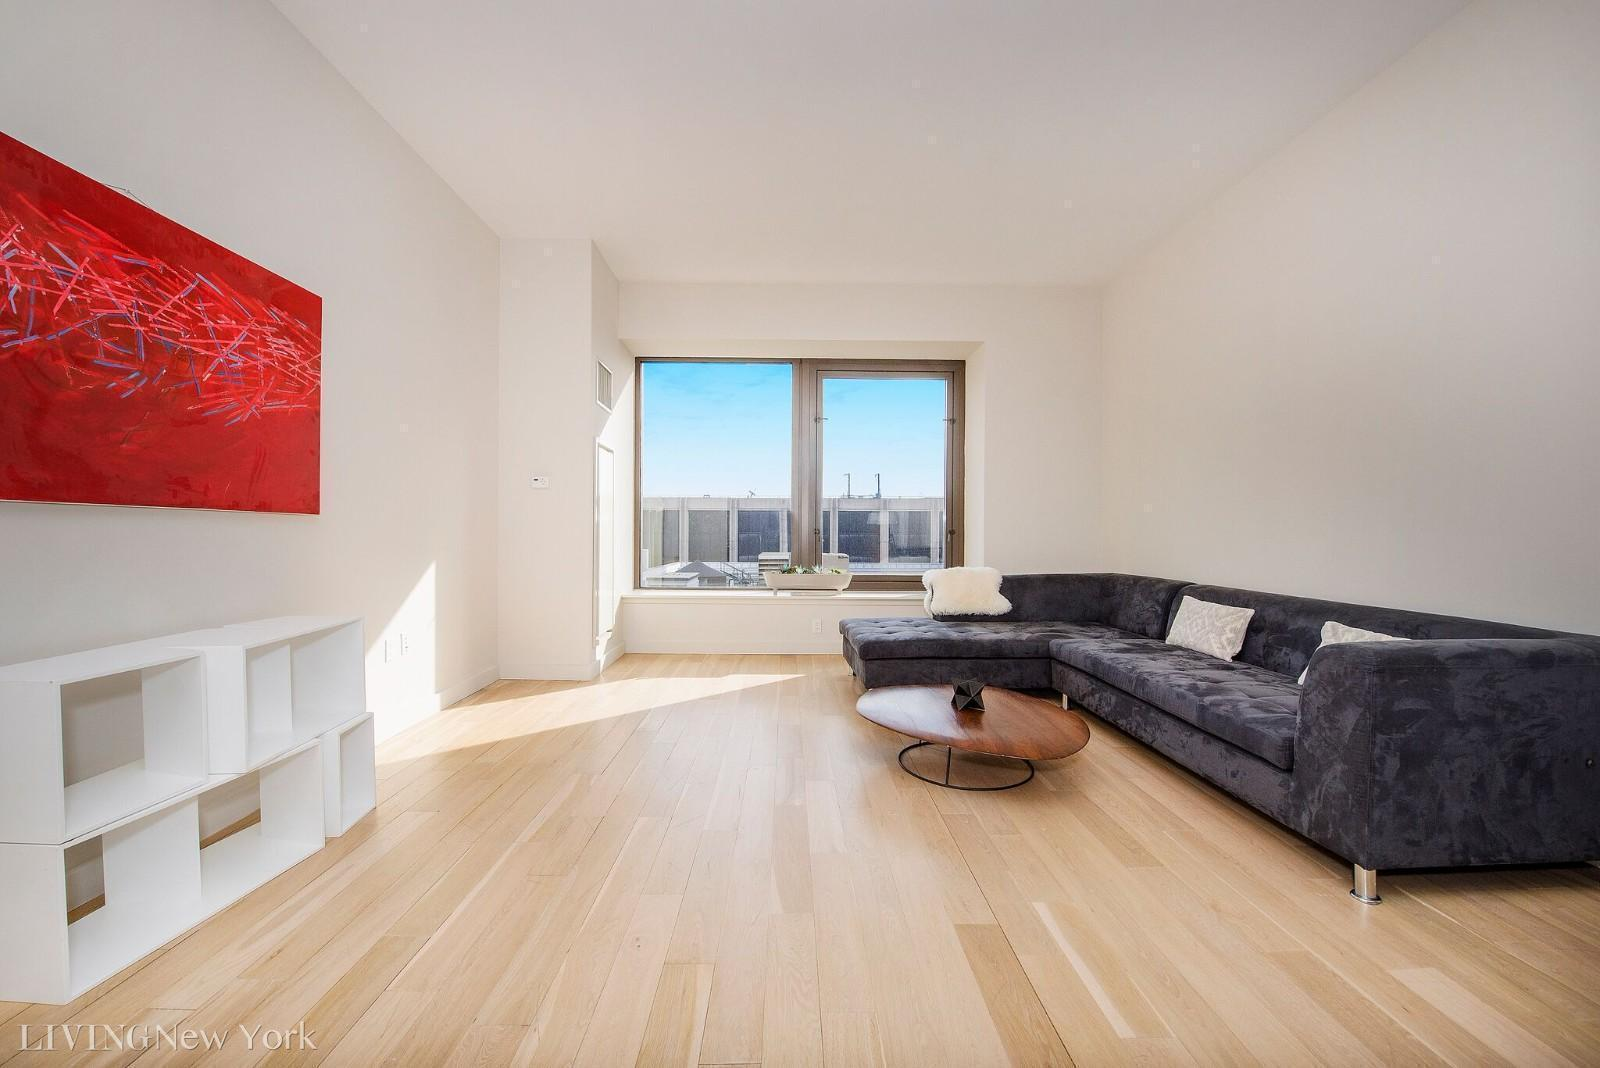 75 Wall Street Over-sized 1 bed with 1.5 Bath Available ASAP!Condo Unit with No Fee!Apartment Features:Loft CondoSoaring High Ceilings With Volumes Of Lateral Space Bright & Spacious Unit With Over-Sized Windows, Allowing Impressive Light Throughout Impeccably Presented Open-Plan Reception Room Views Over-Looking The New York Skyline Marble Tiled Floors & Walls In Bathrooms Building Features: Hotel-Style Lobby & Reception Area Adorned With Rich FinishesTwenty-Four Hour Concierge & Luxury Attache Deluxe Residents' Lounge With Billiards Table & Wet Bar State of The Art Gym Stunning Sky Roof Deck With Spectacular City Views Valet Services Including Dry Cleaning, Laundry & Housekeeping*Net effective advertised with $50 off first month. Please be advised that some of these photos are stock photos